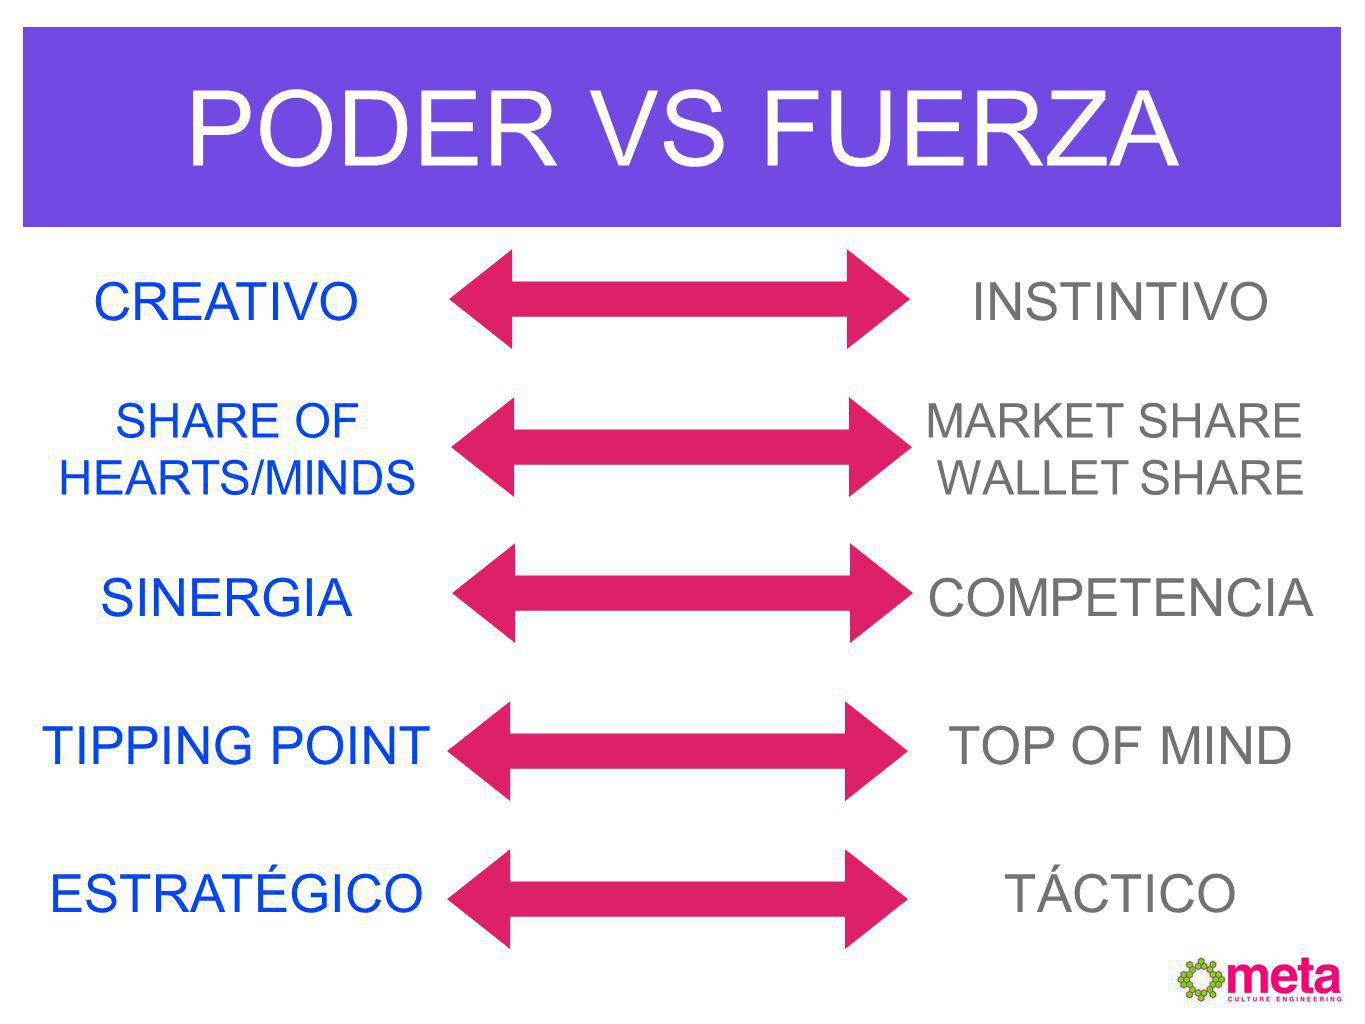 PODER VS FUERZA INSTINTIVOCREATIVO INSPIRACIÓN SHARE OF HEARTS/MINDS SINERGIA TIPPING POINT ESTRATÉGICO MARKET SHARE WALLET SHARE COMPETENCIA TOP OF MIND TÁCTICO